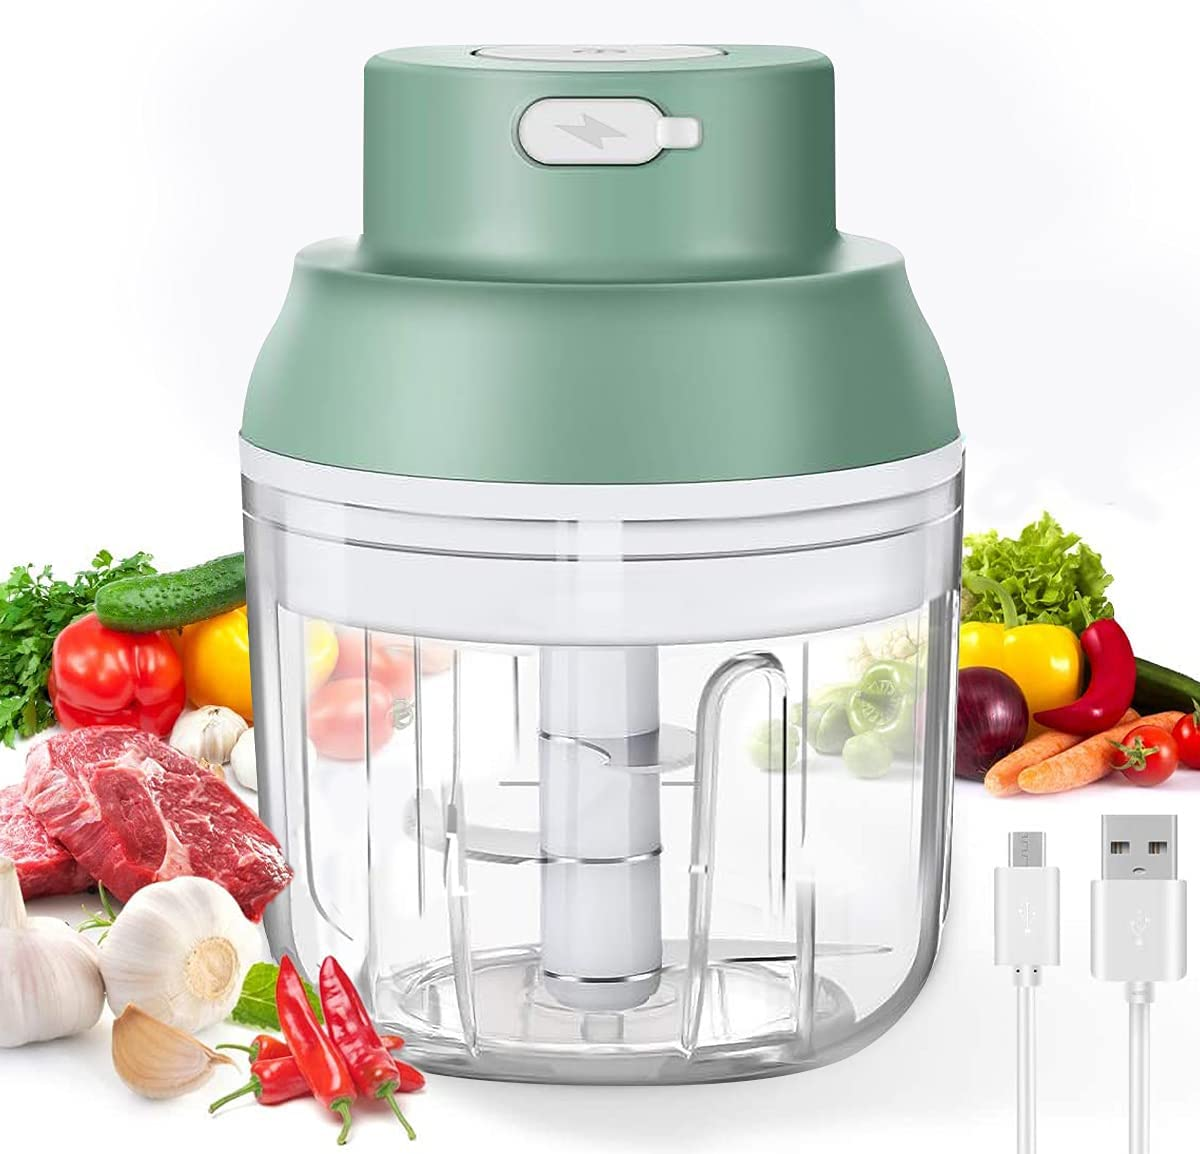 SUPYINI Electric Mini Garlic Chopper 2 Cups Wireless Portable Rechargeable Food Blender Mincer Masher for Chop Onion Ginger Vegetable Pepper Spice Meat, Baby Food, BPA Free(100ml+250ml)